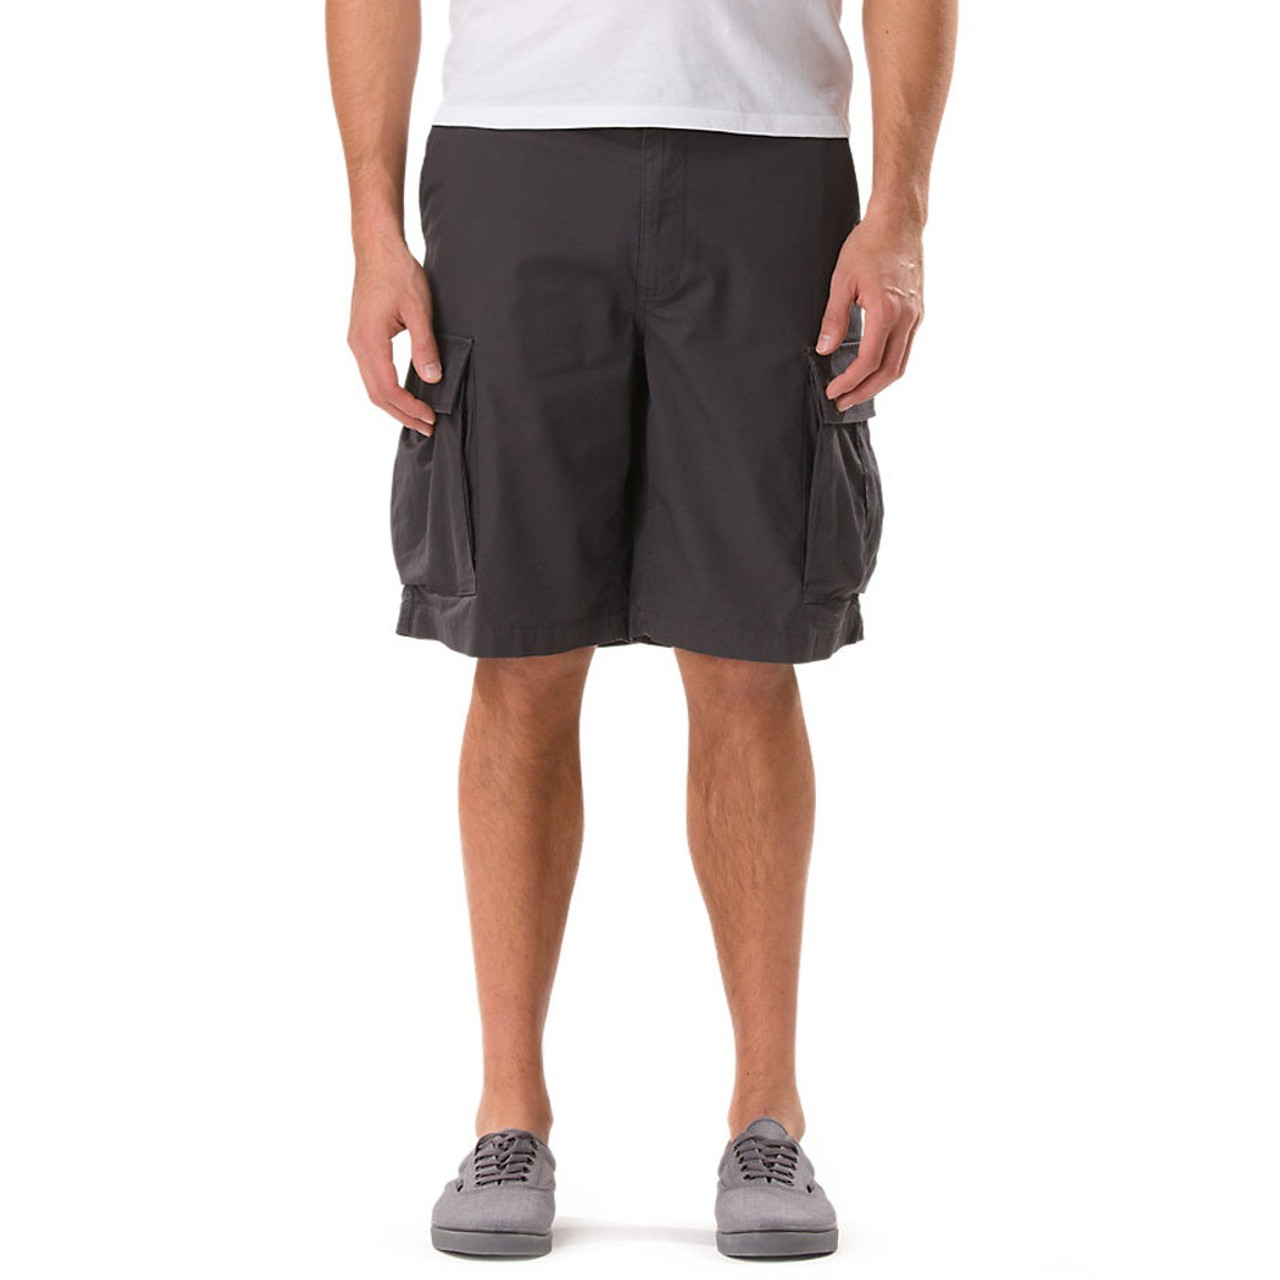 dcd63f5696 Vans Shorts - Tremain Cargo - New Charcoal - Surf and Dirt